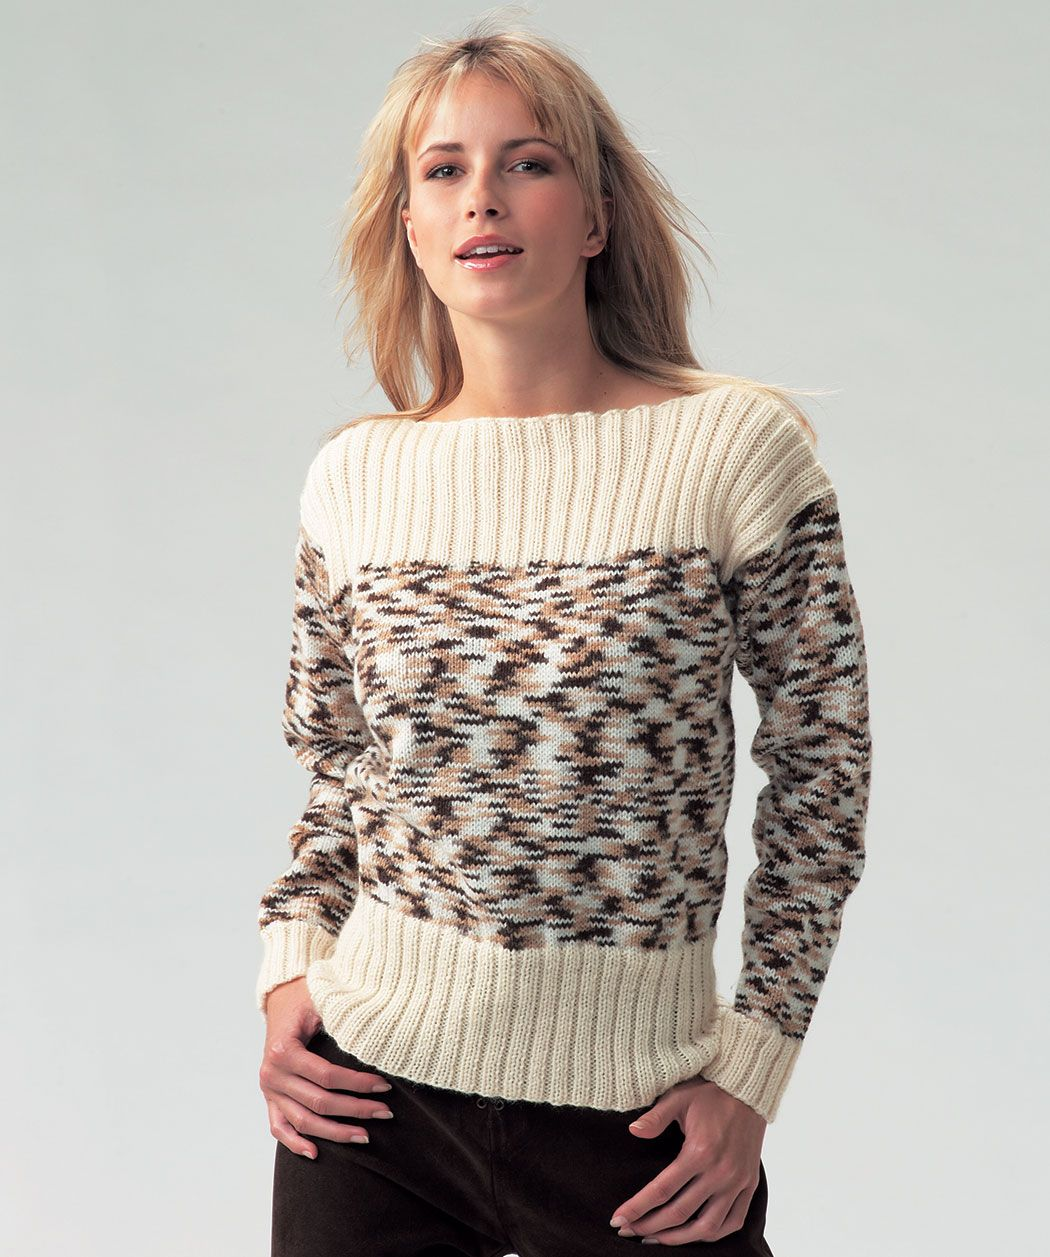 Boat Neck Ladies Jumper Free Knitting Pattern In